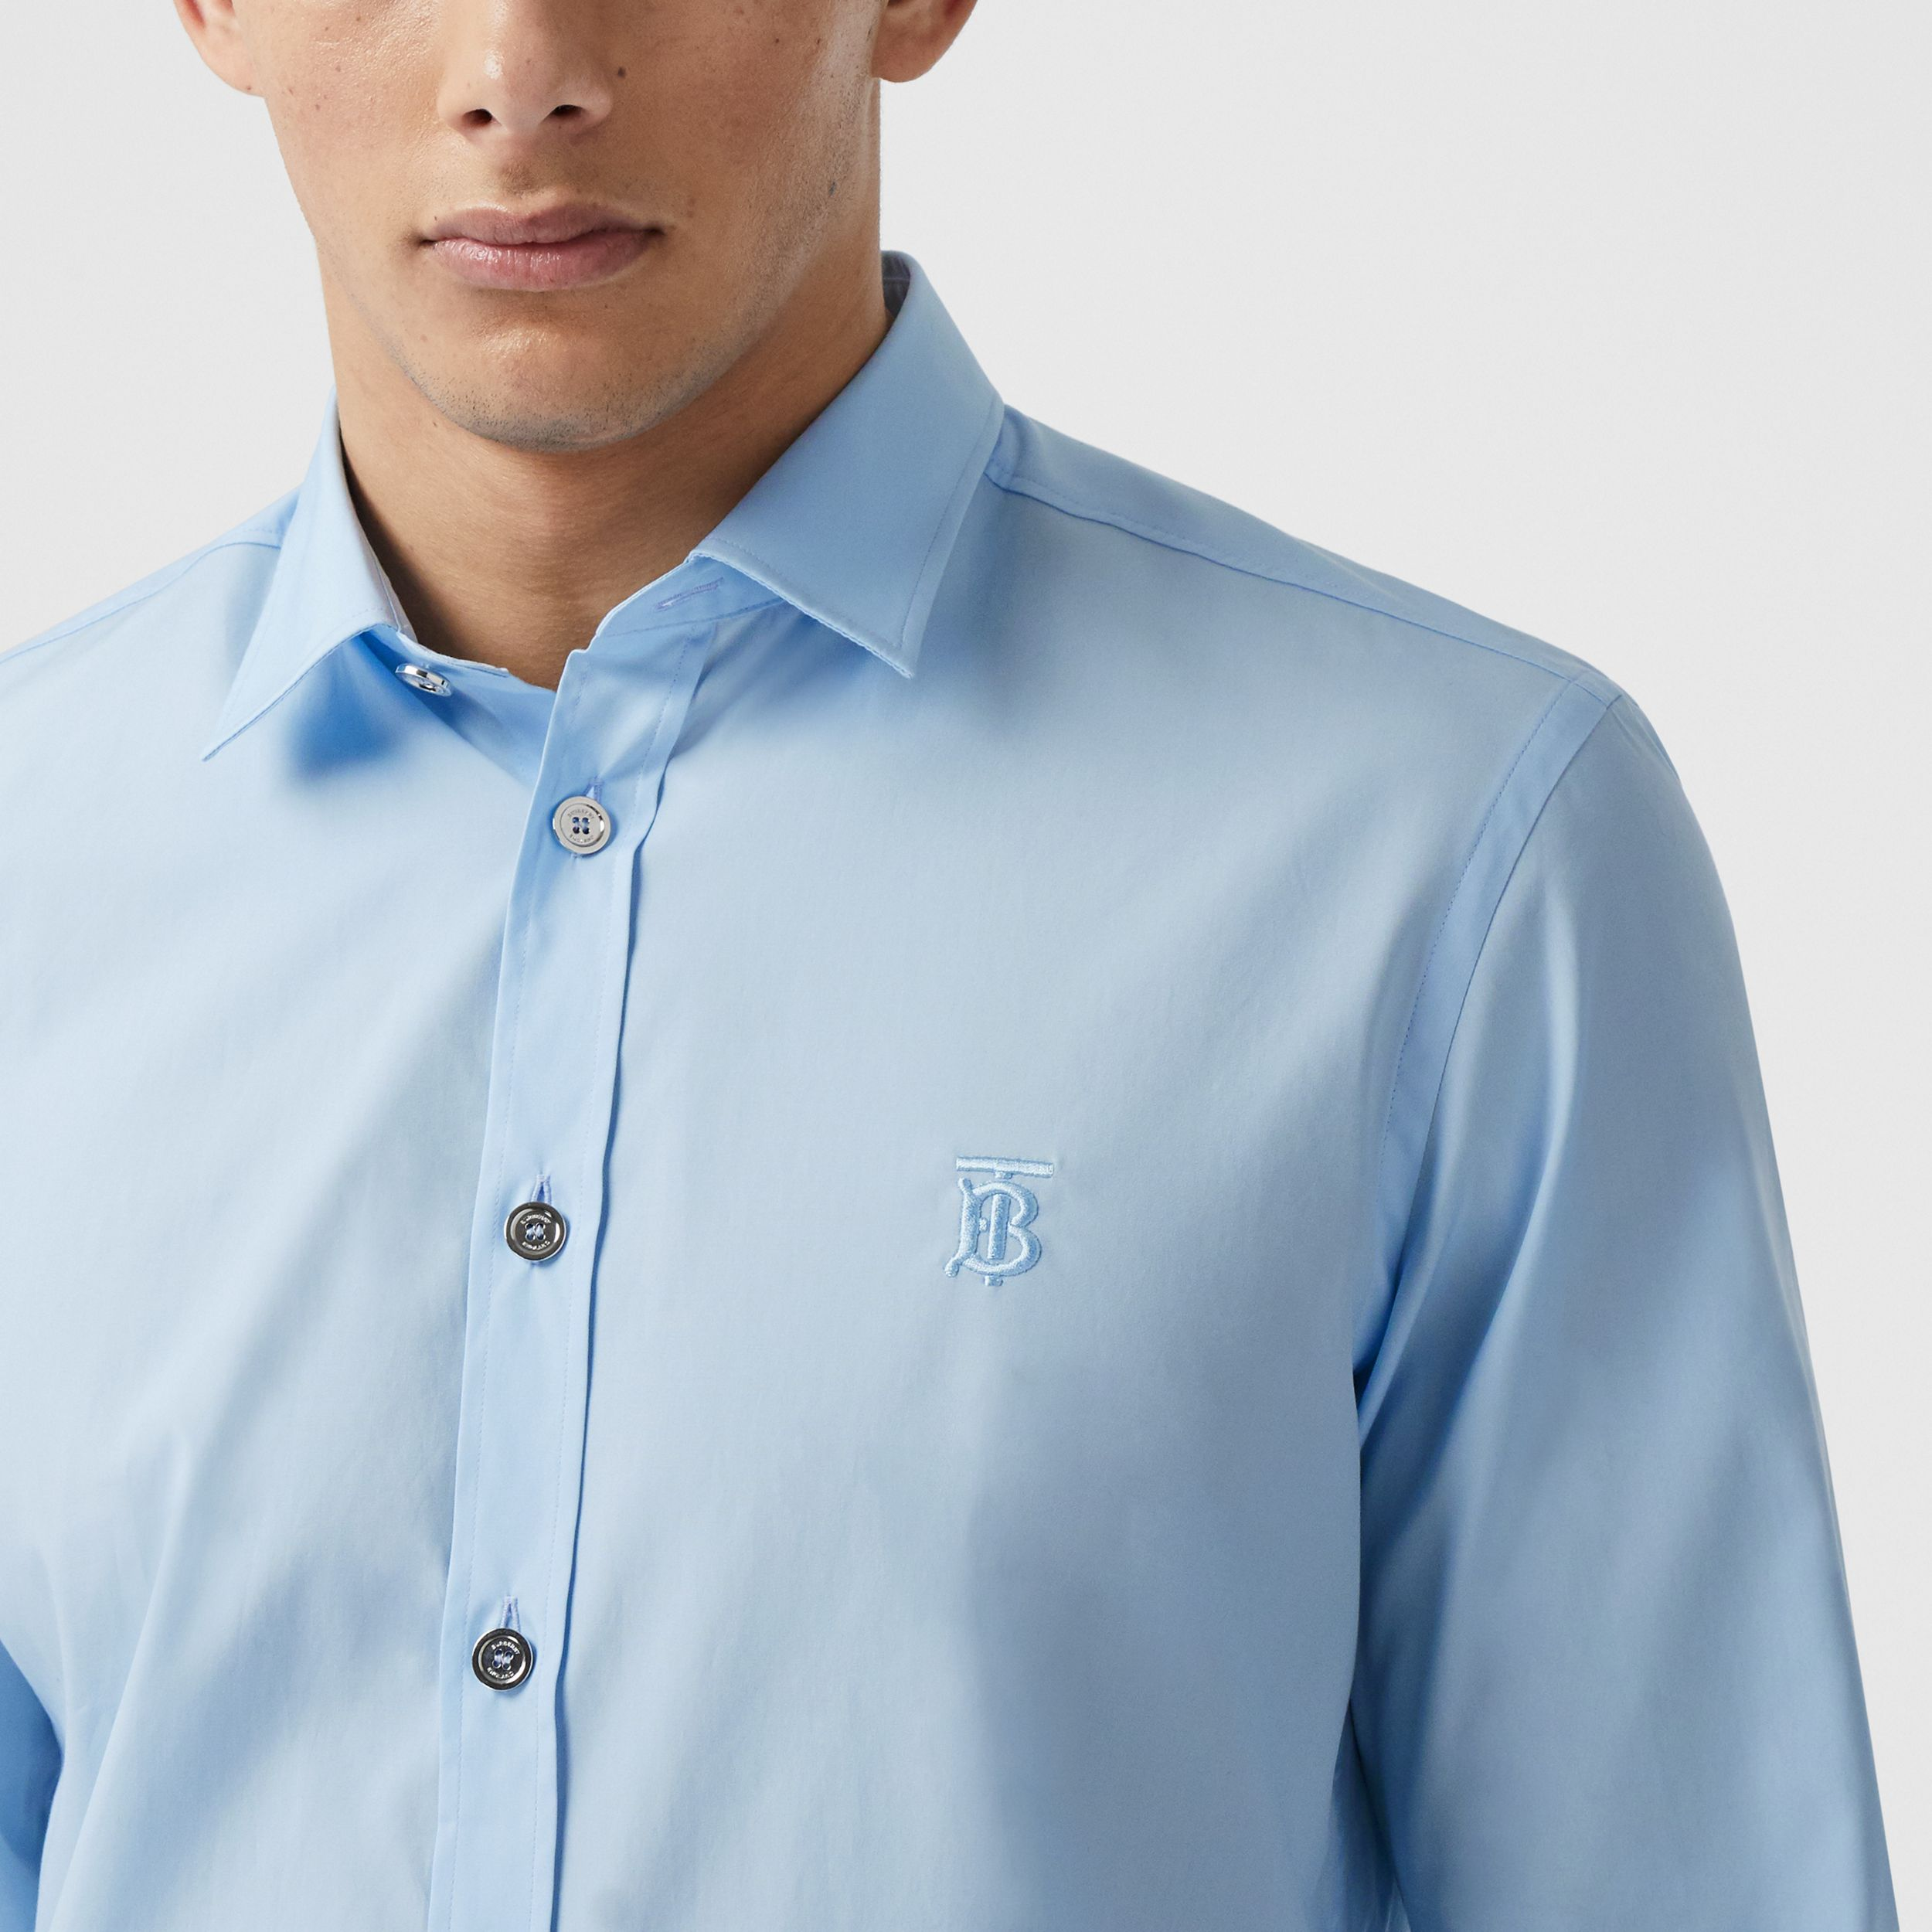 Monogram Motif Stretch Cotton Poplin Shirt in Pale Blue - Men | Burberry - 2